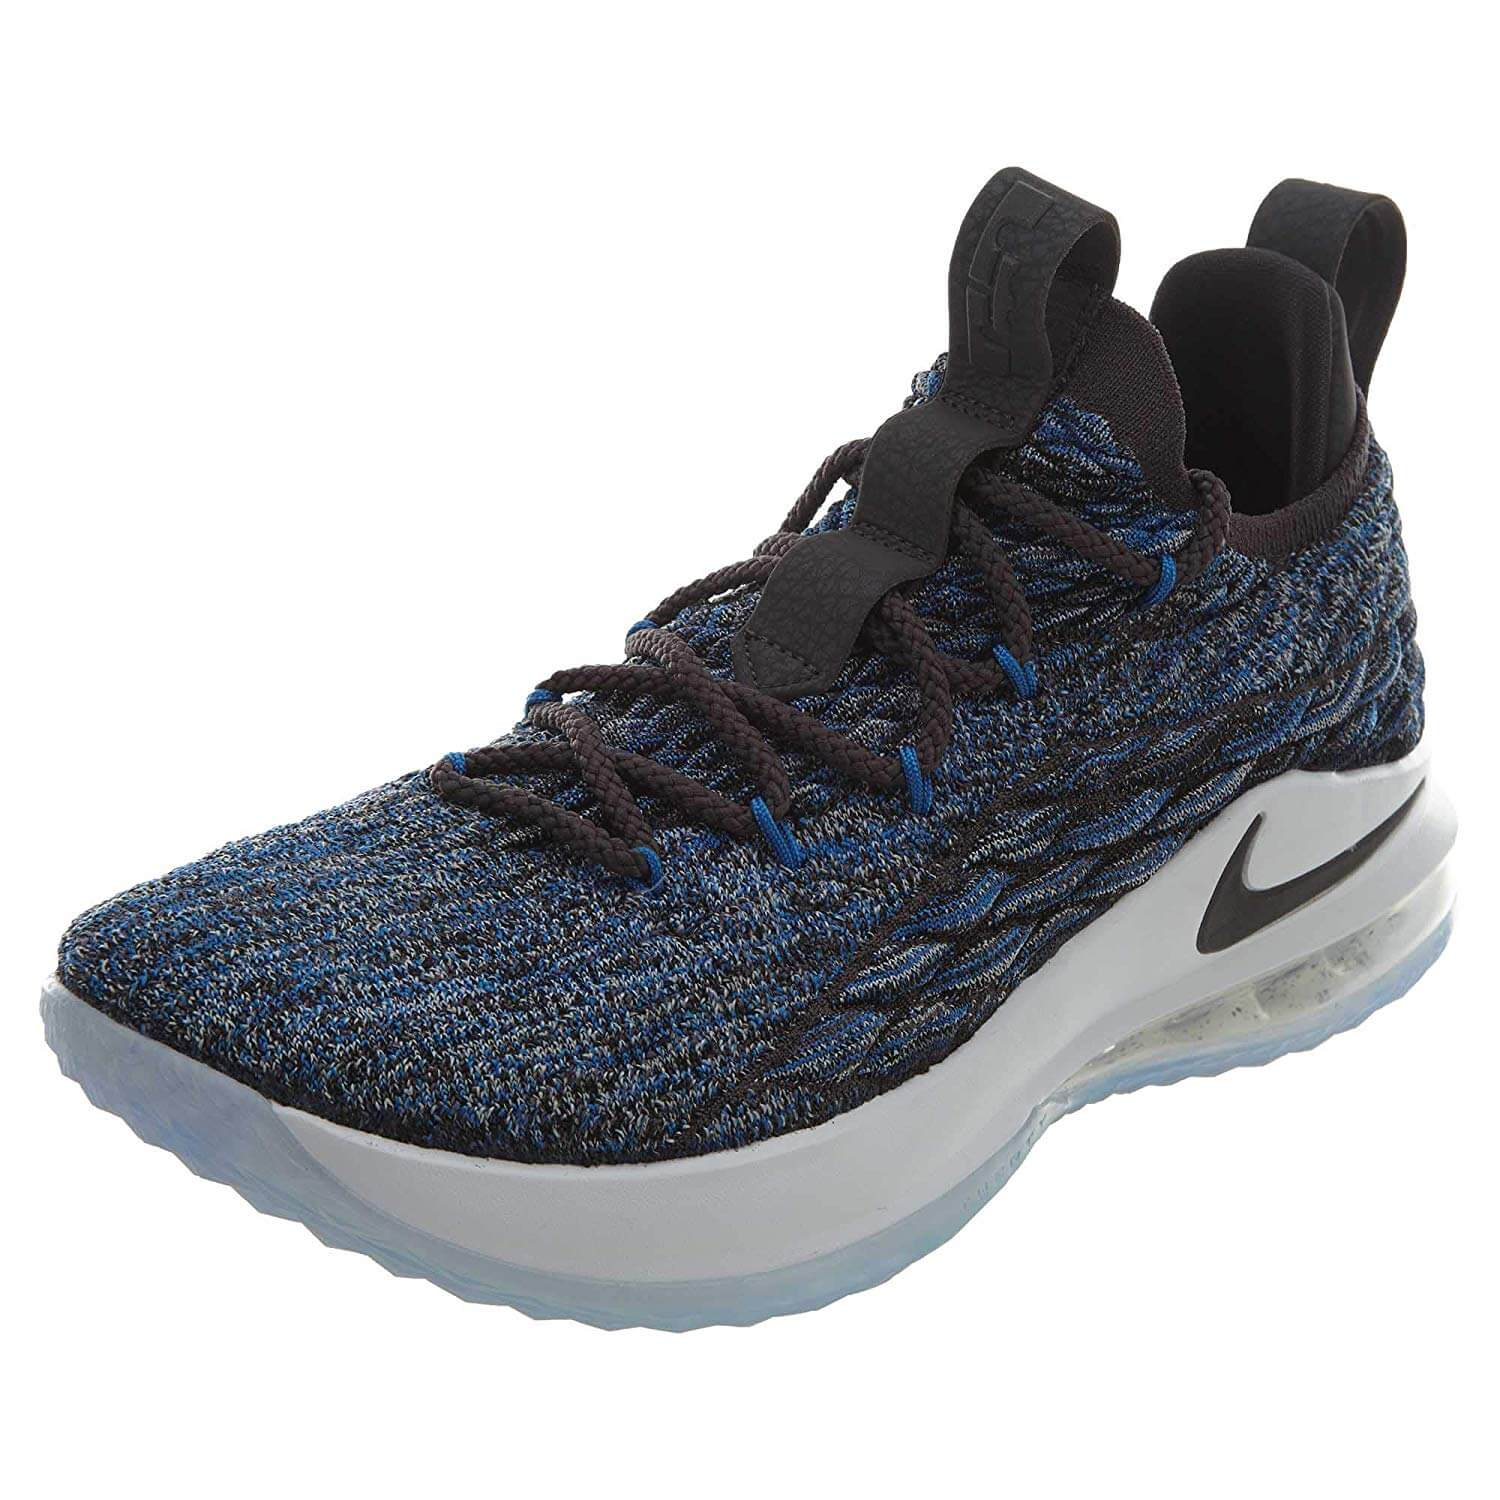 48252e90bd8 Nike LeBron 15 Lowed   Rated - Buy or Not in May 2019